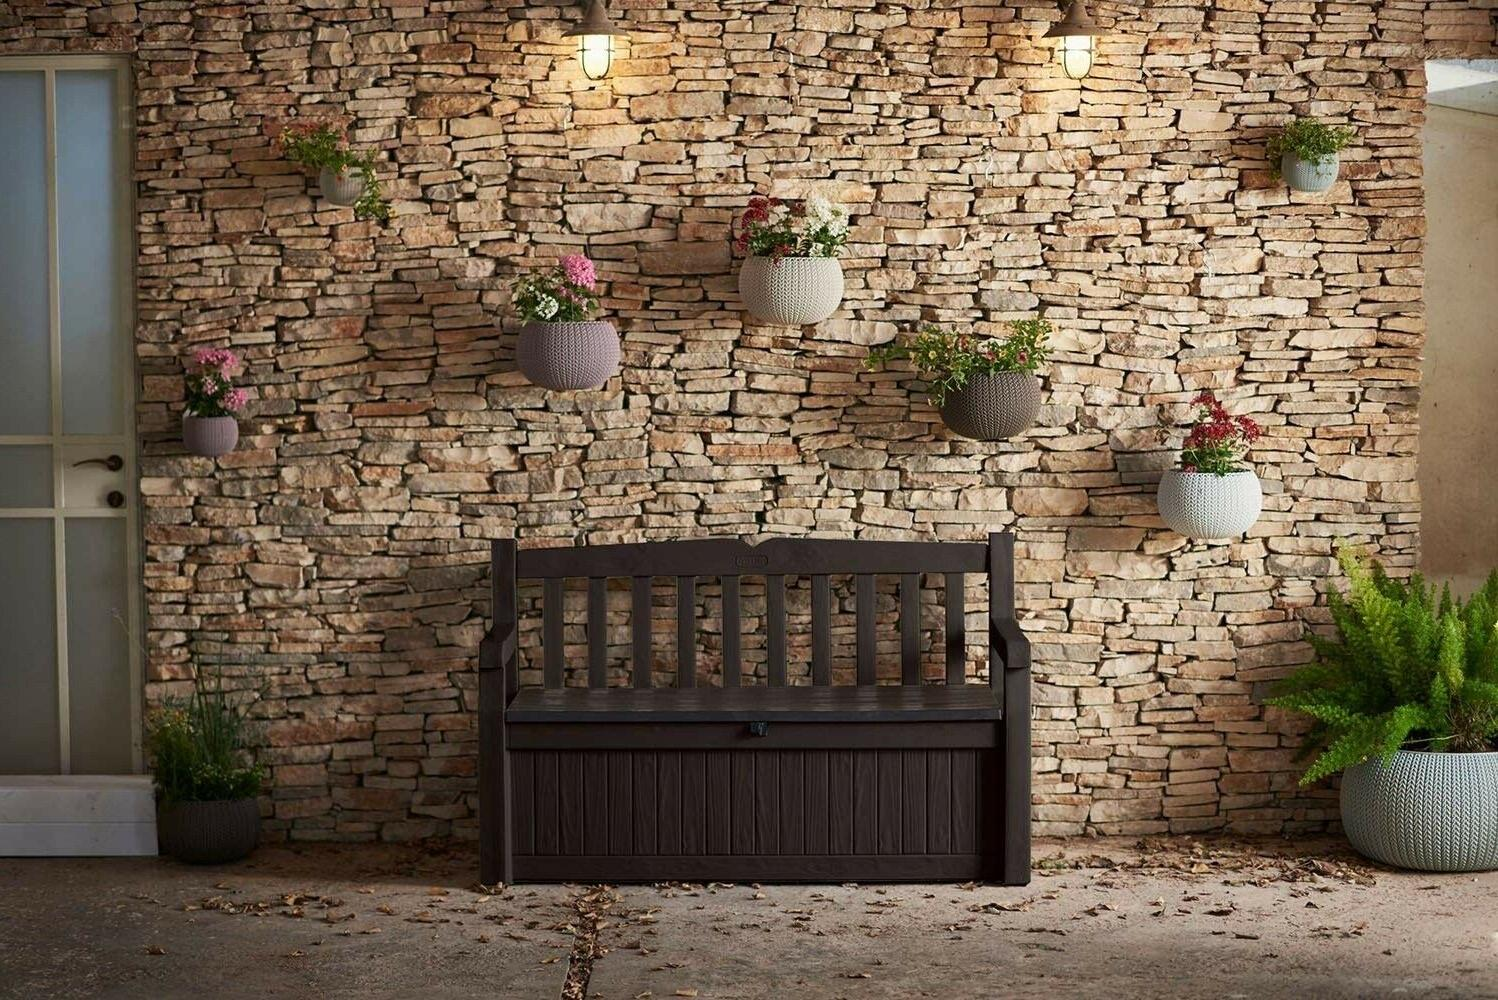 Keter for Decor and Simple&Quick Set Up-NO